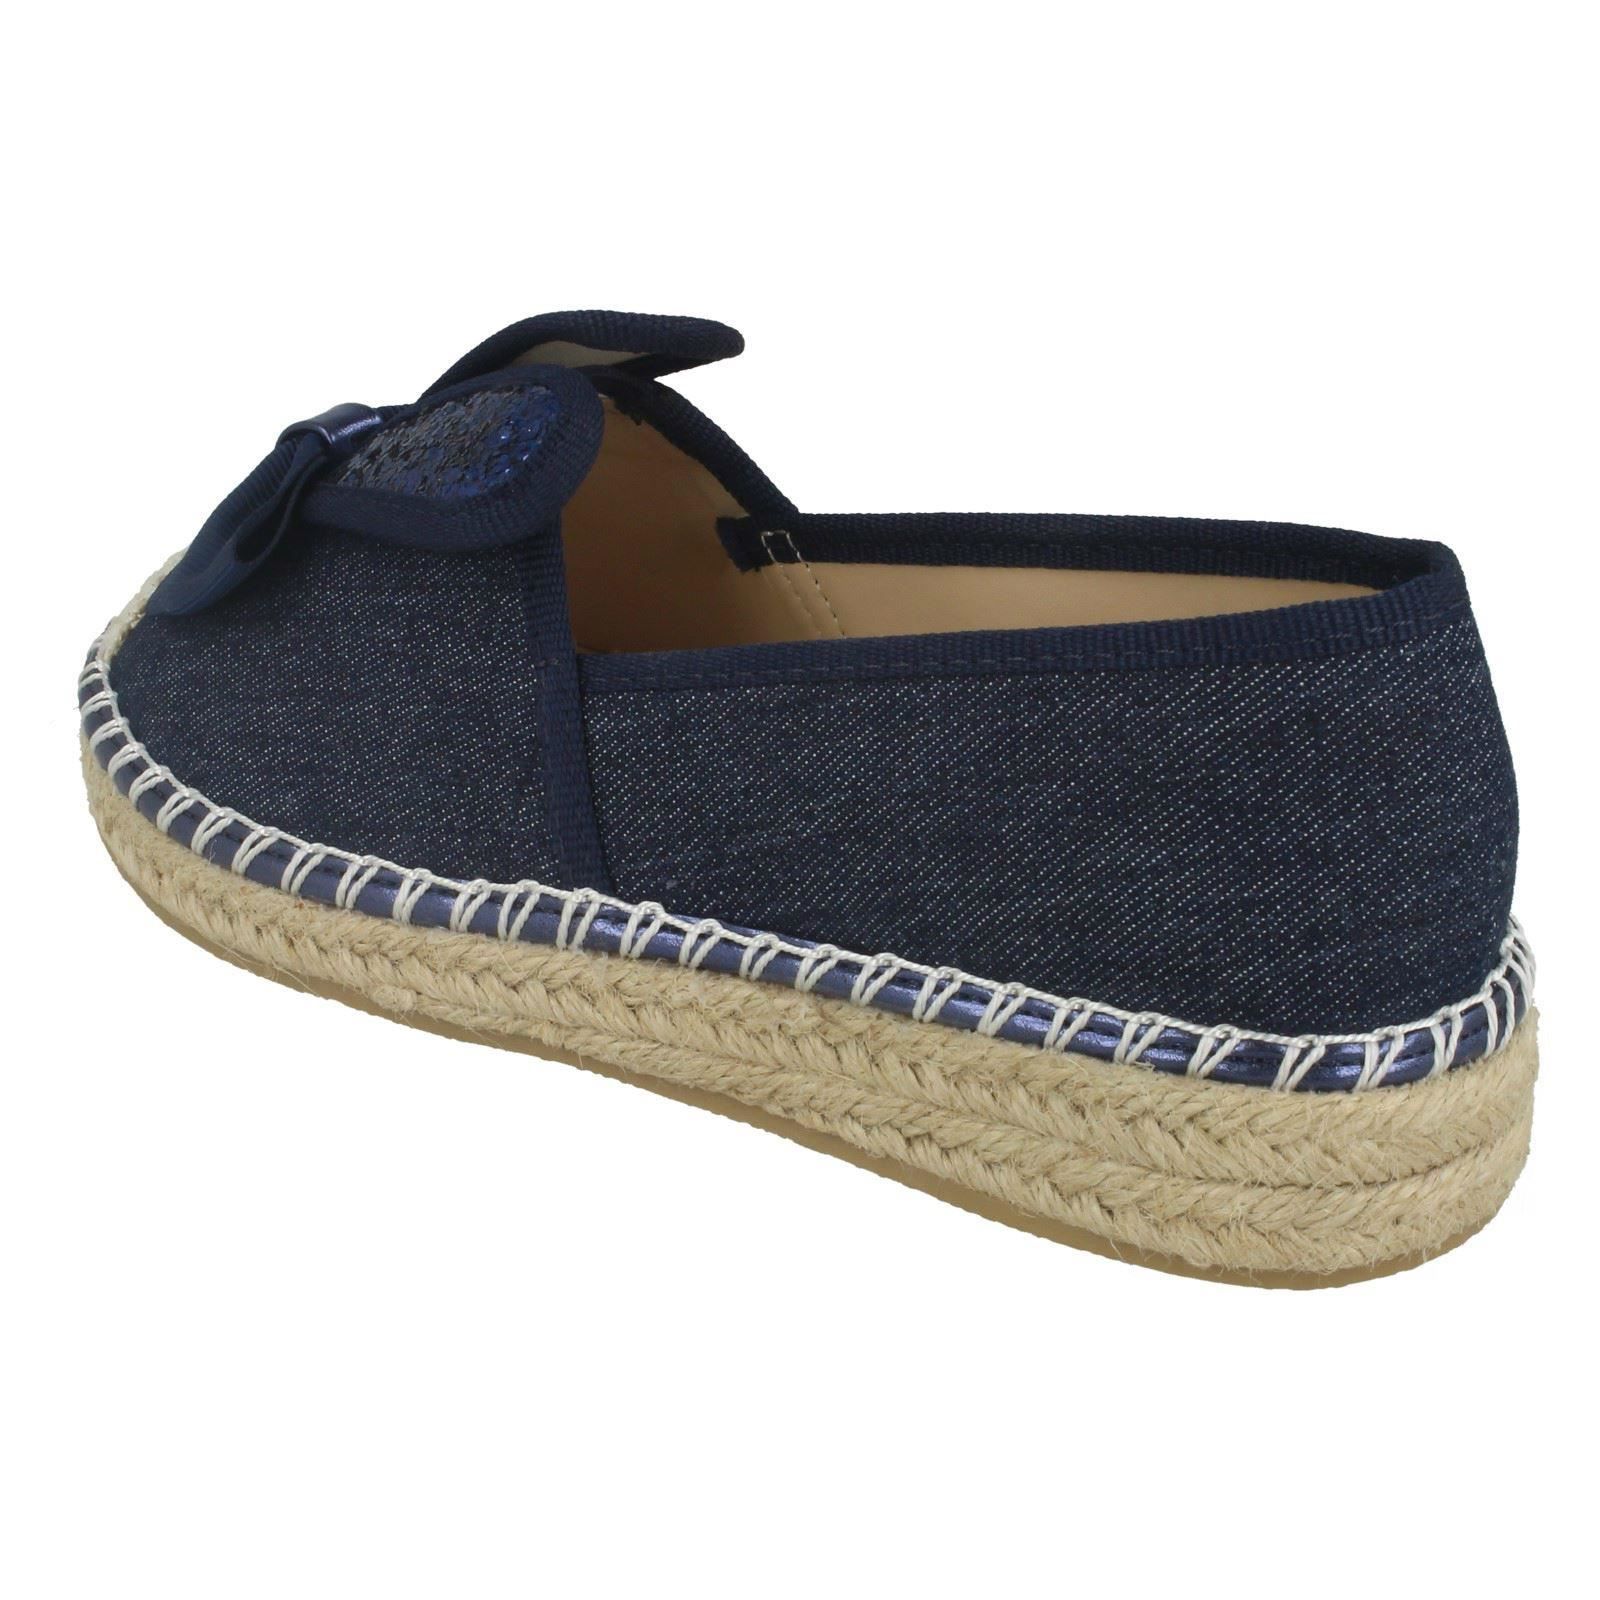 /'Girls Spot On/'  Bunny Ears Casual Shoes H2R417